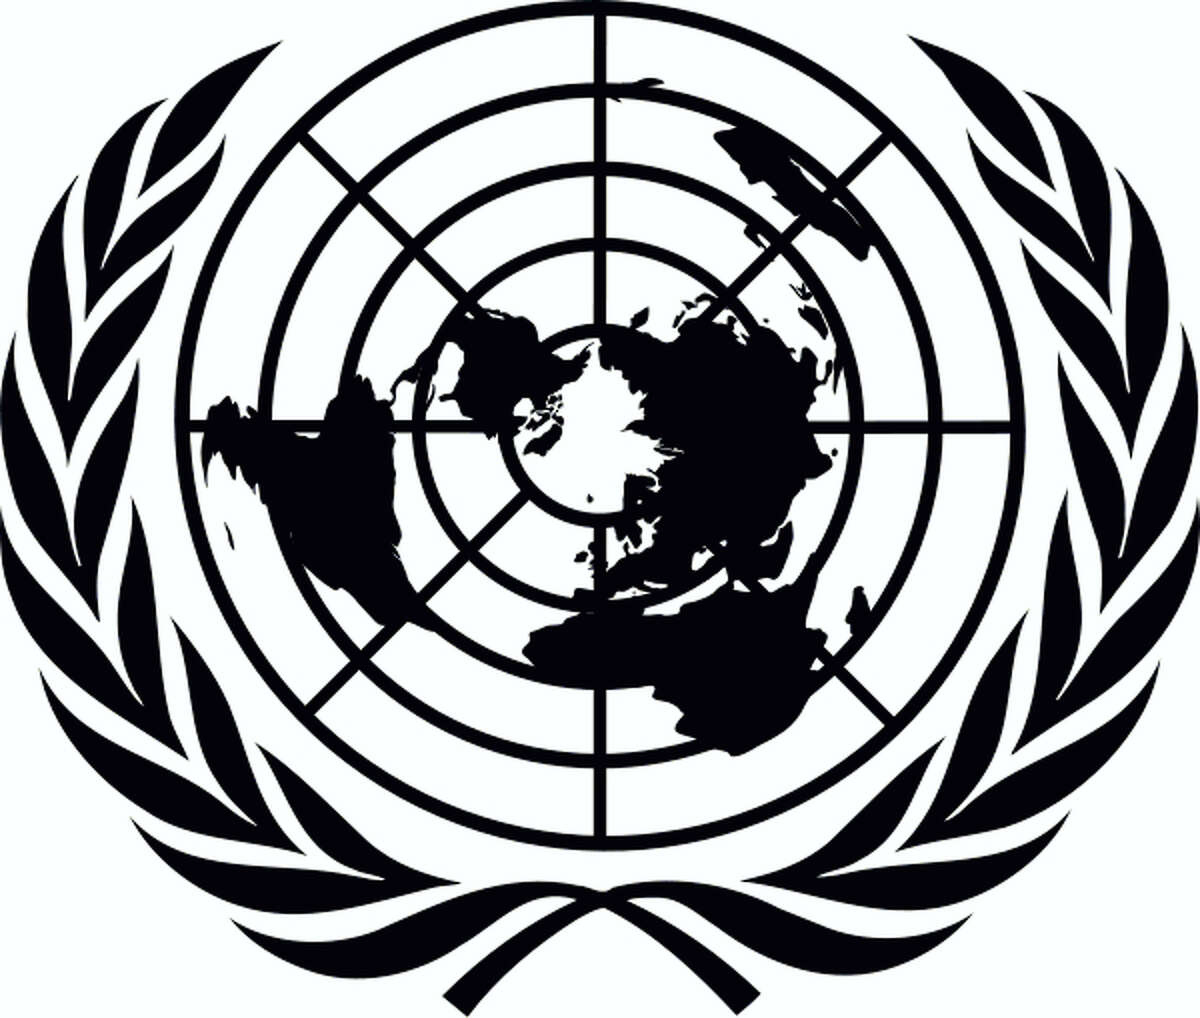 """The United Nations Association will offer a panel discussion, """"A Conversation on Refugees: Local and Global,"""" Sunday, May 7 at 2 p.m., at the Gunn Memorial Library in Washington."""